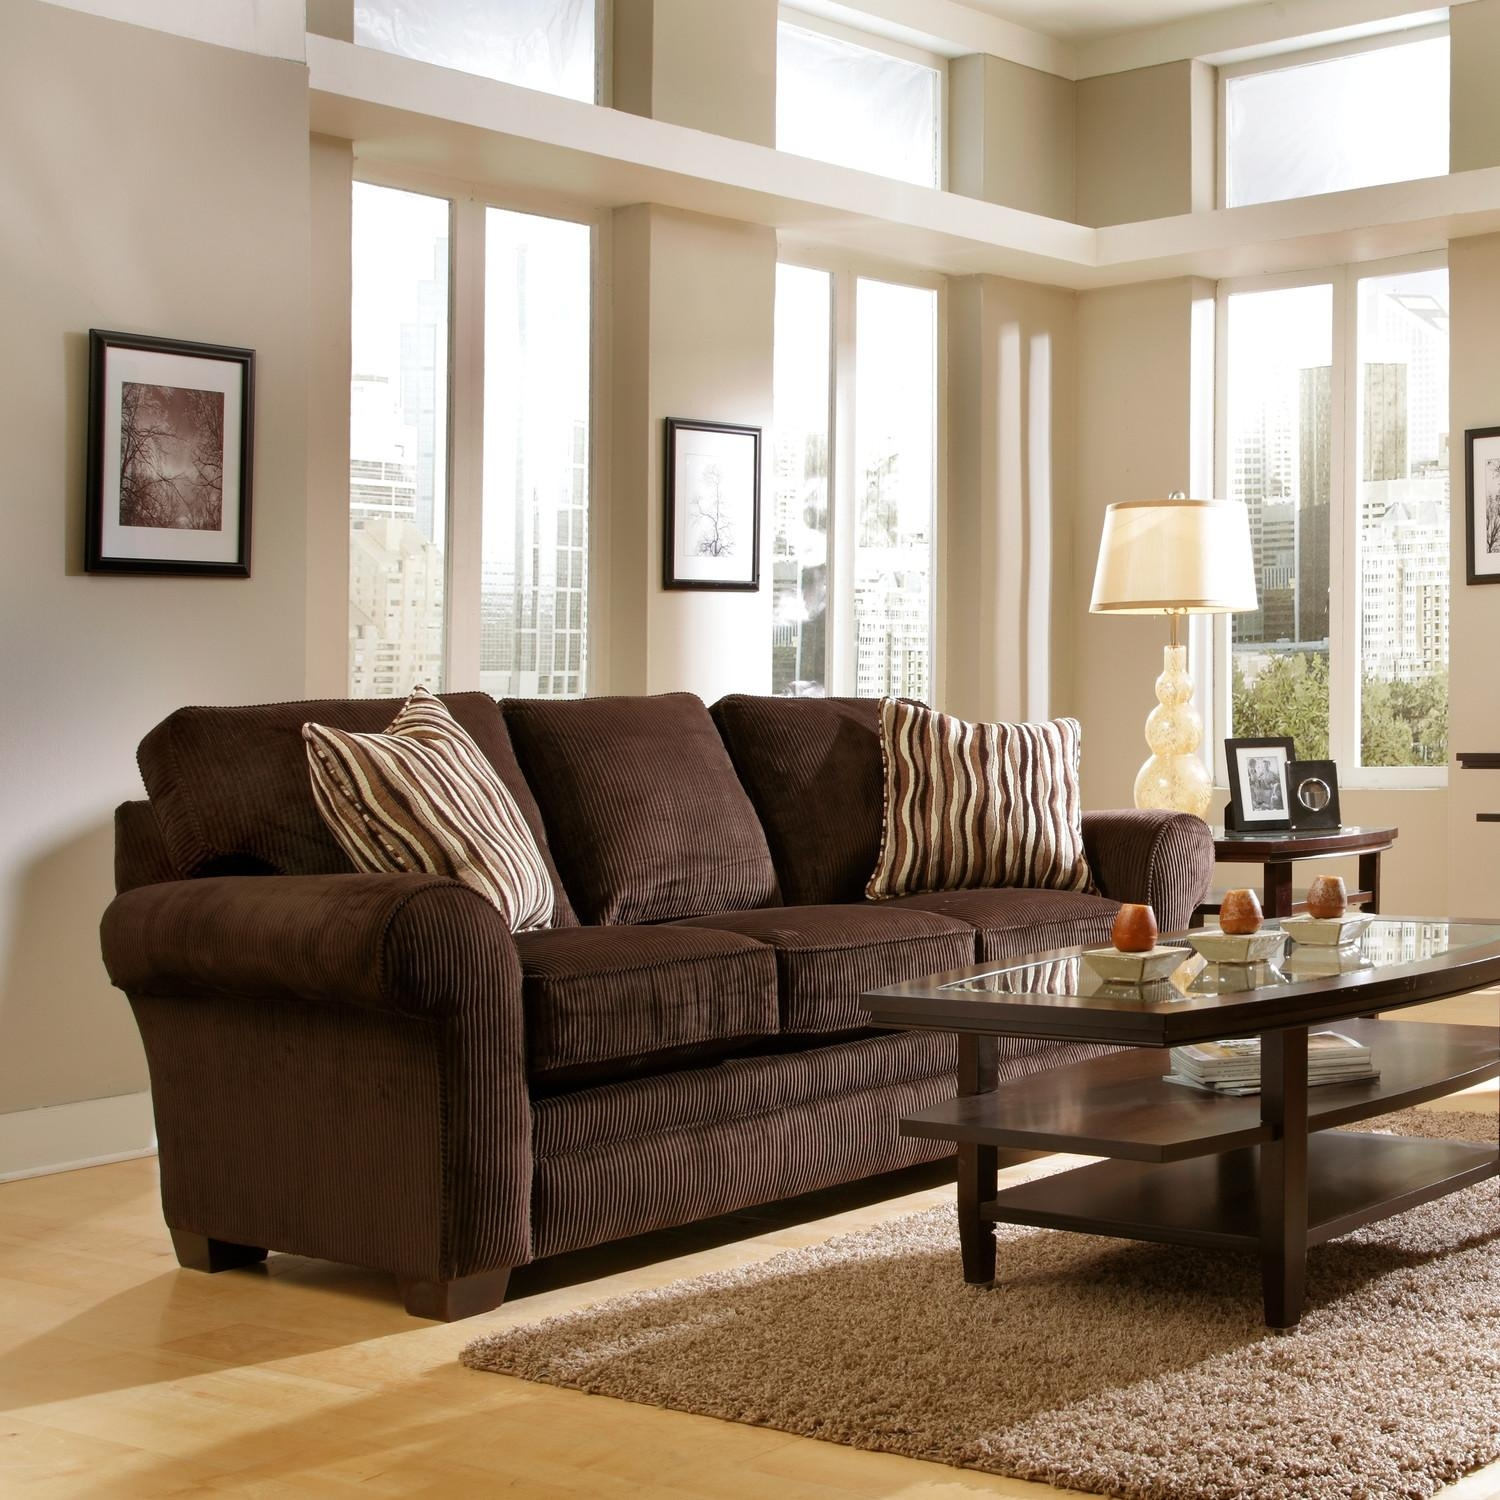 Chocolate Brown Couch Decorating Ideas 20 43 Choices Of Brown Sofa Decors Sofa Ideas